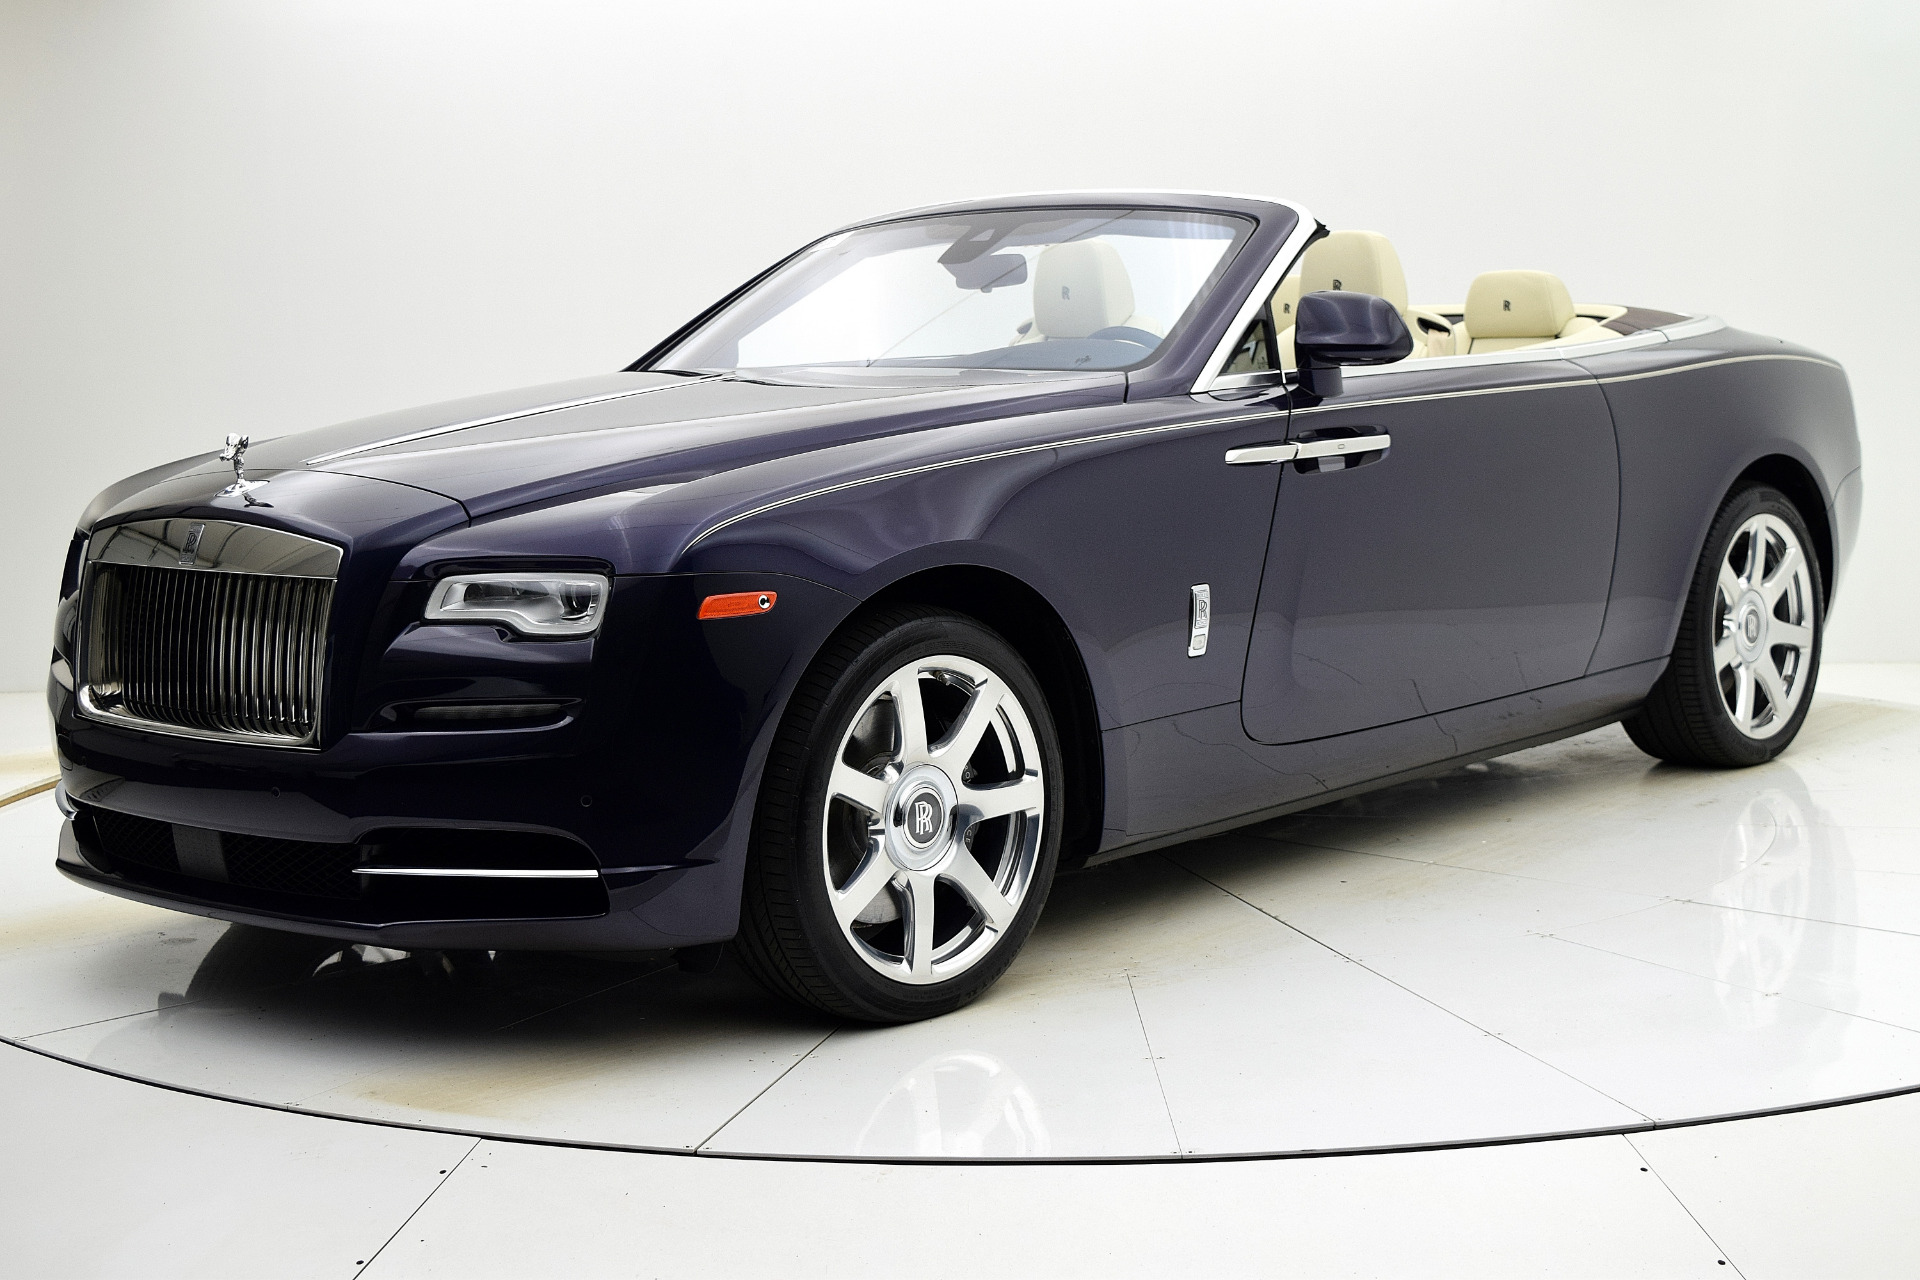 Used 2016 Rolls-Royce Dawn for sale $255,880 at F.C. Kerbeck Aston Martin in Palmyra NJ 08065 2